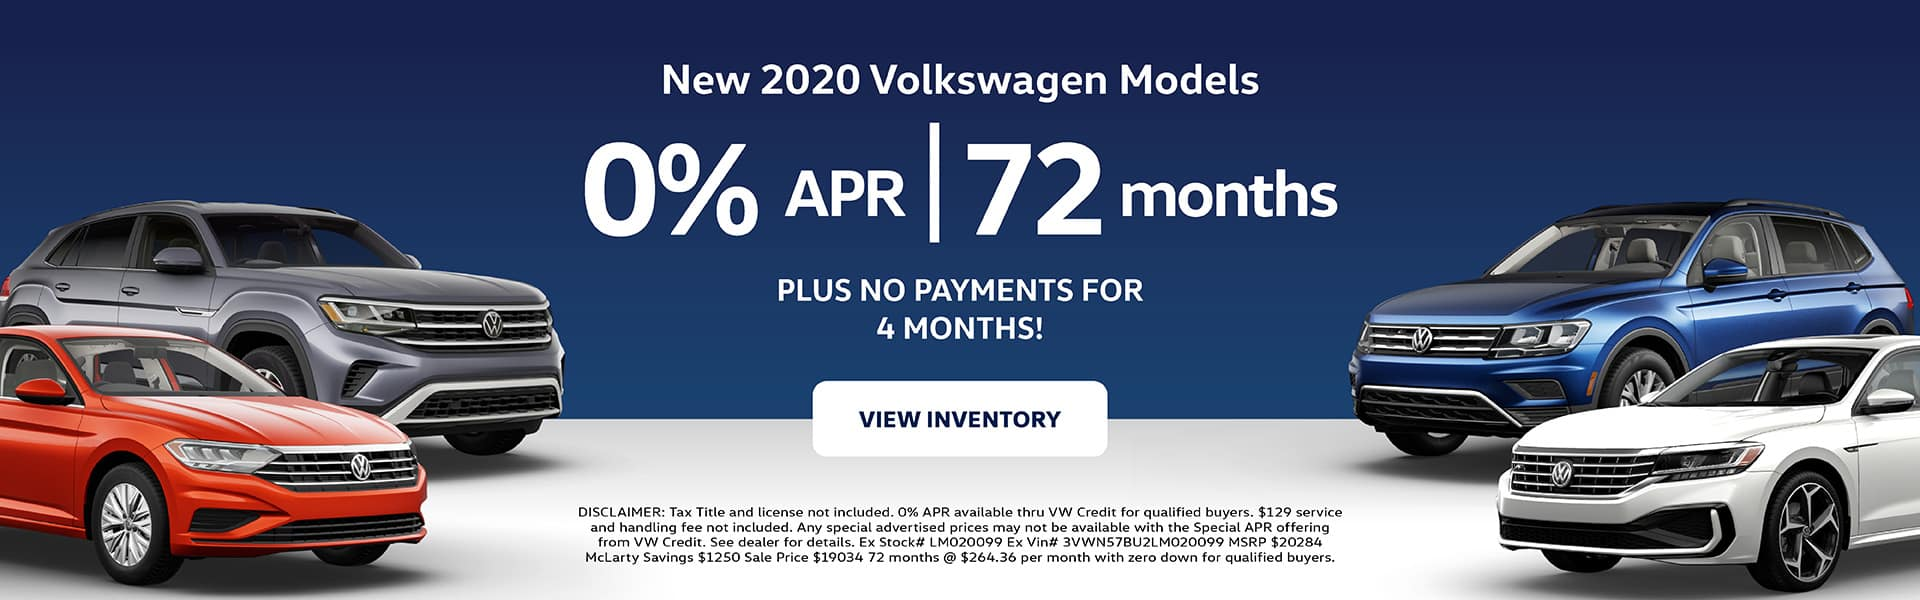 New 2020 Volkswagen Models now 0% APR for 72 Months!